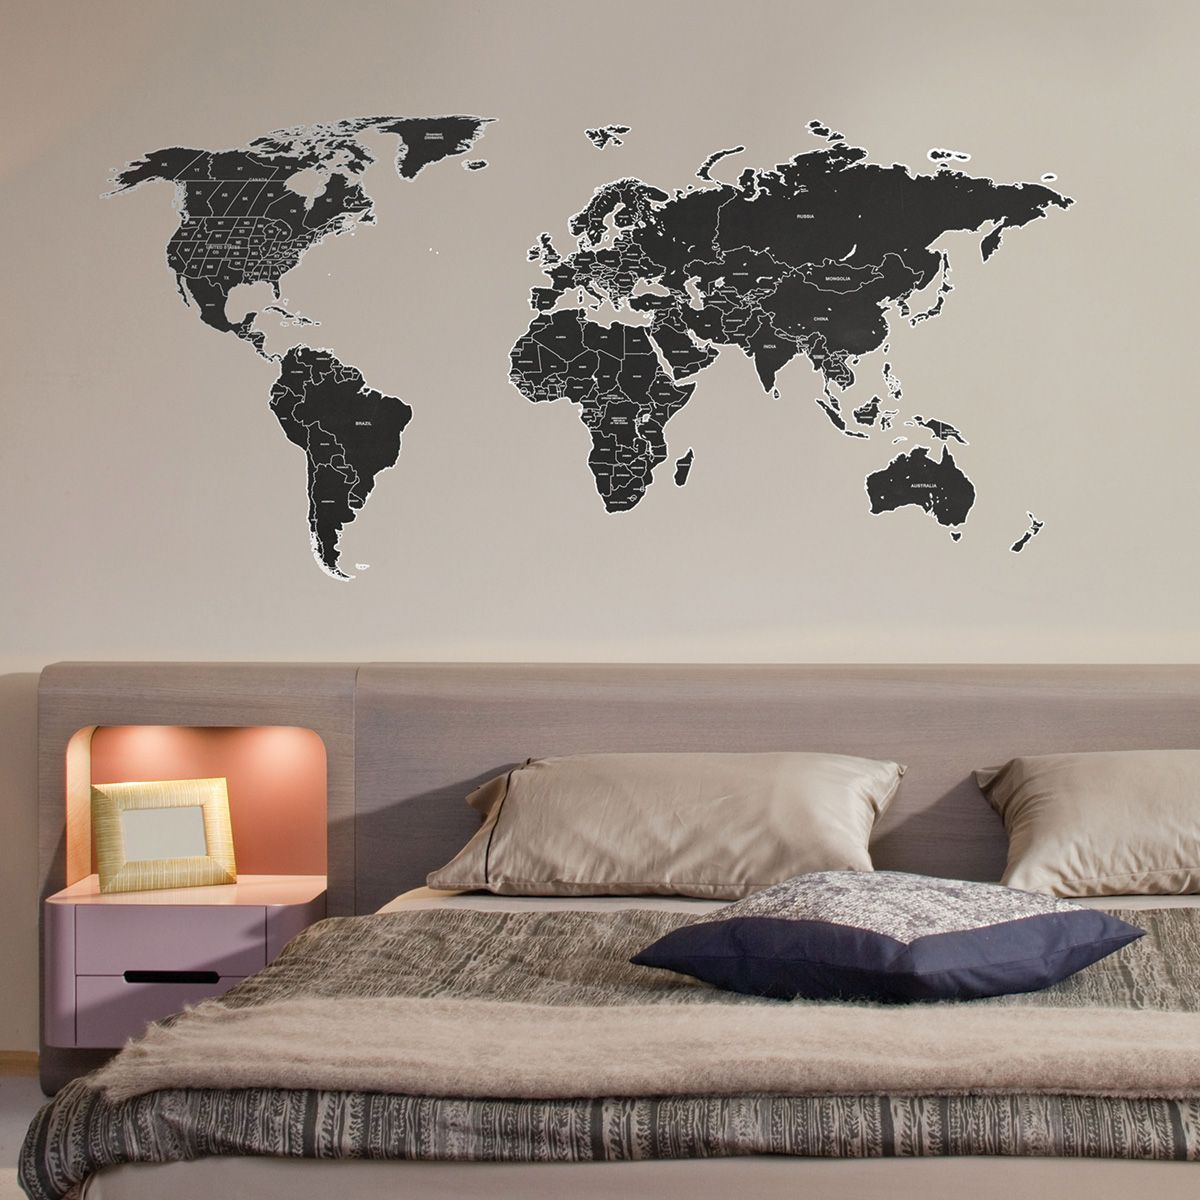 Black labelled world map wall sticker buy online today at bouf black labelled world map wall sticker buy online today at bouf gumiabroncs Image collections